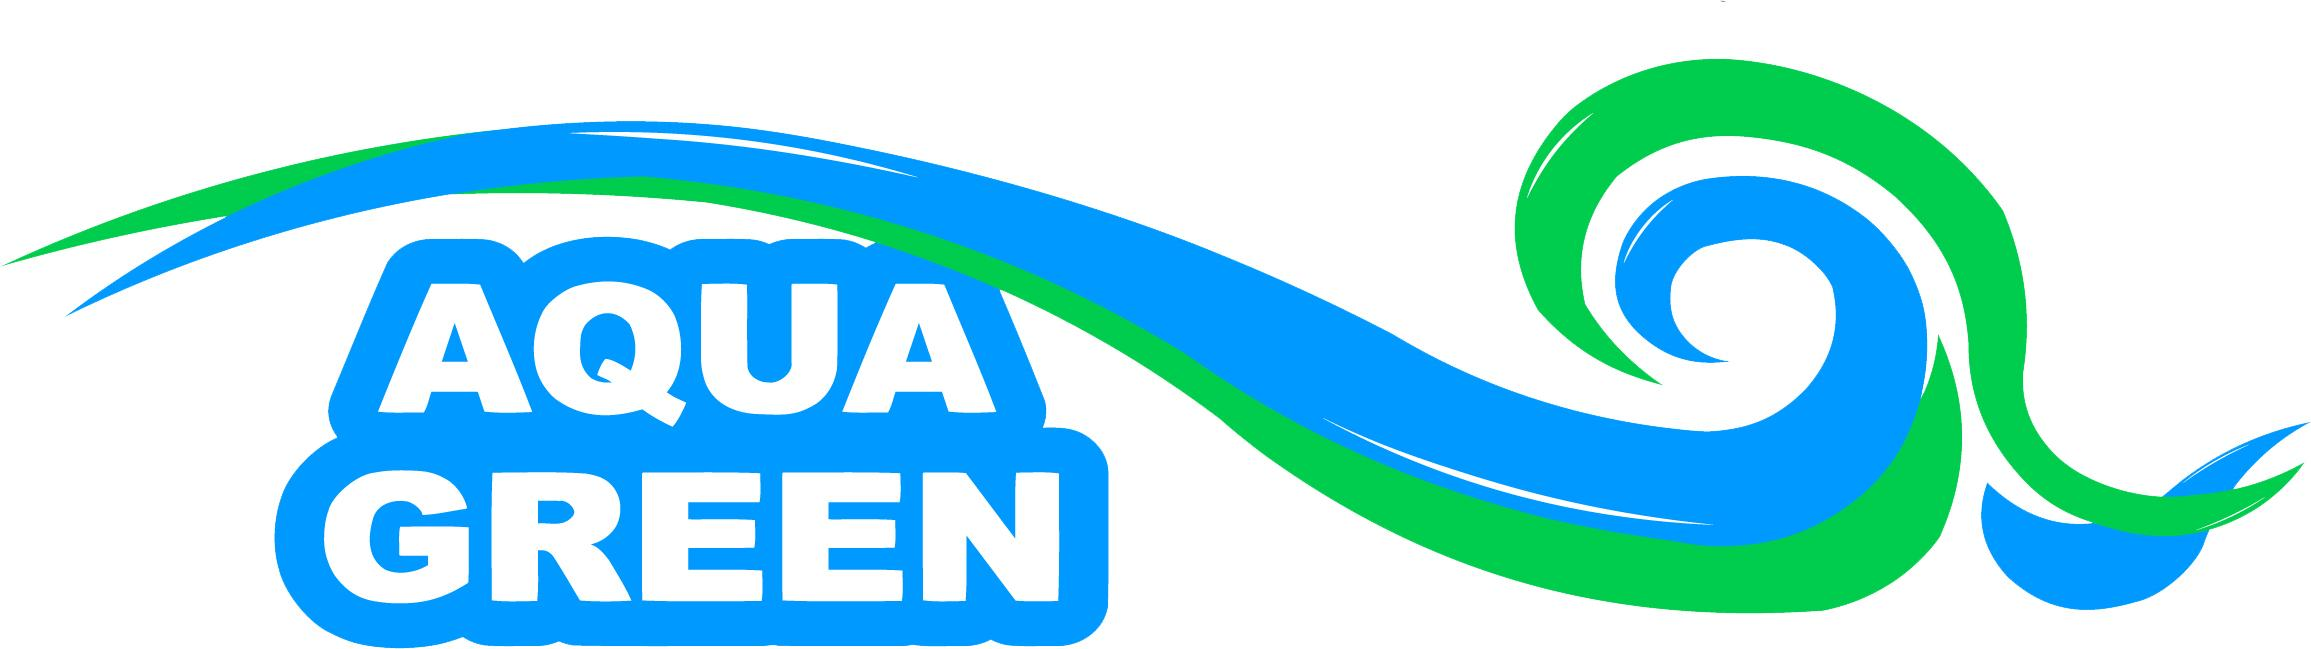 aquagreen logo_5